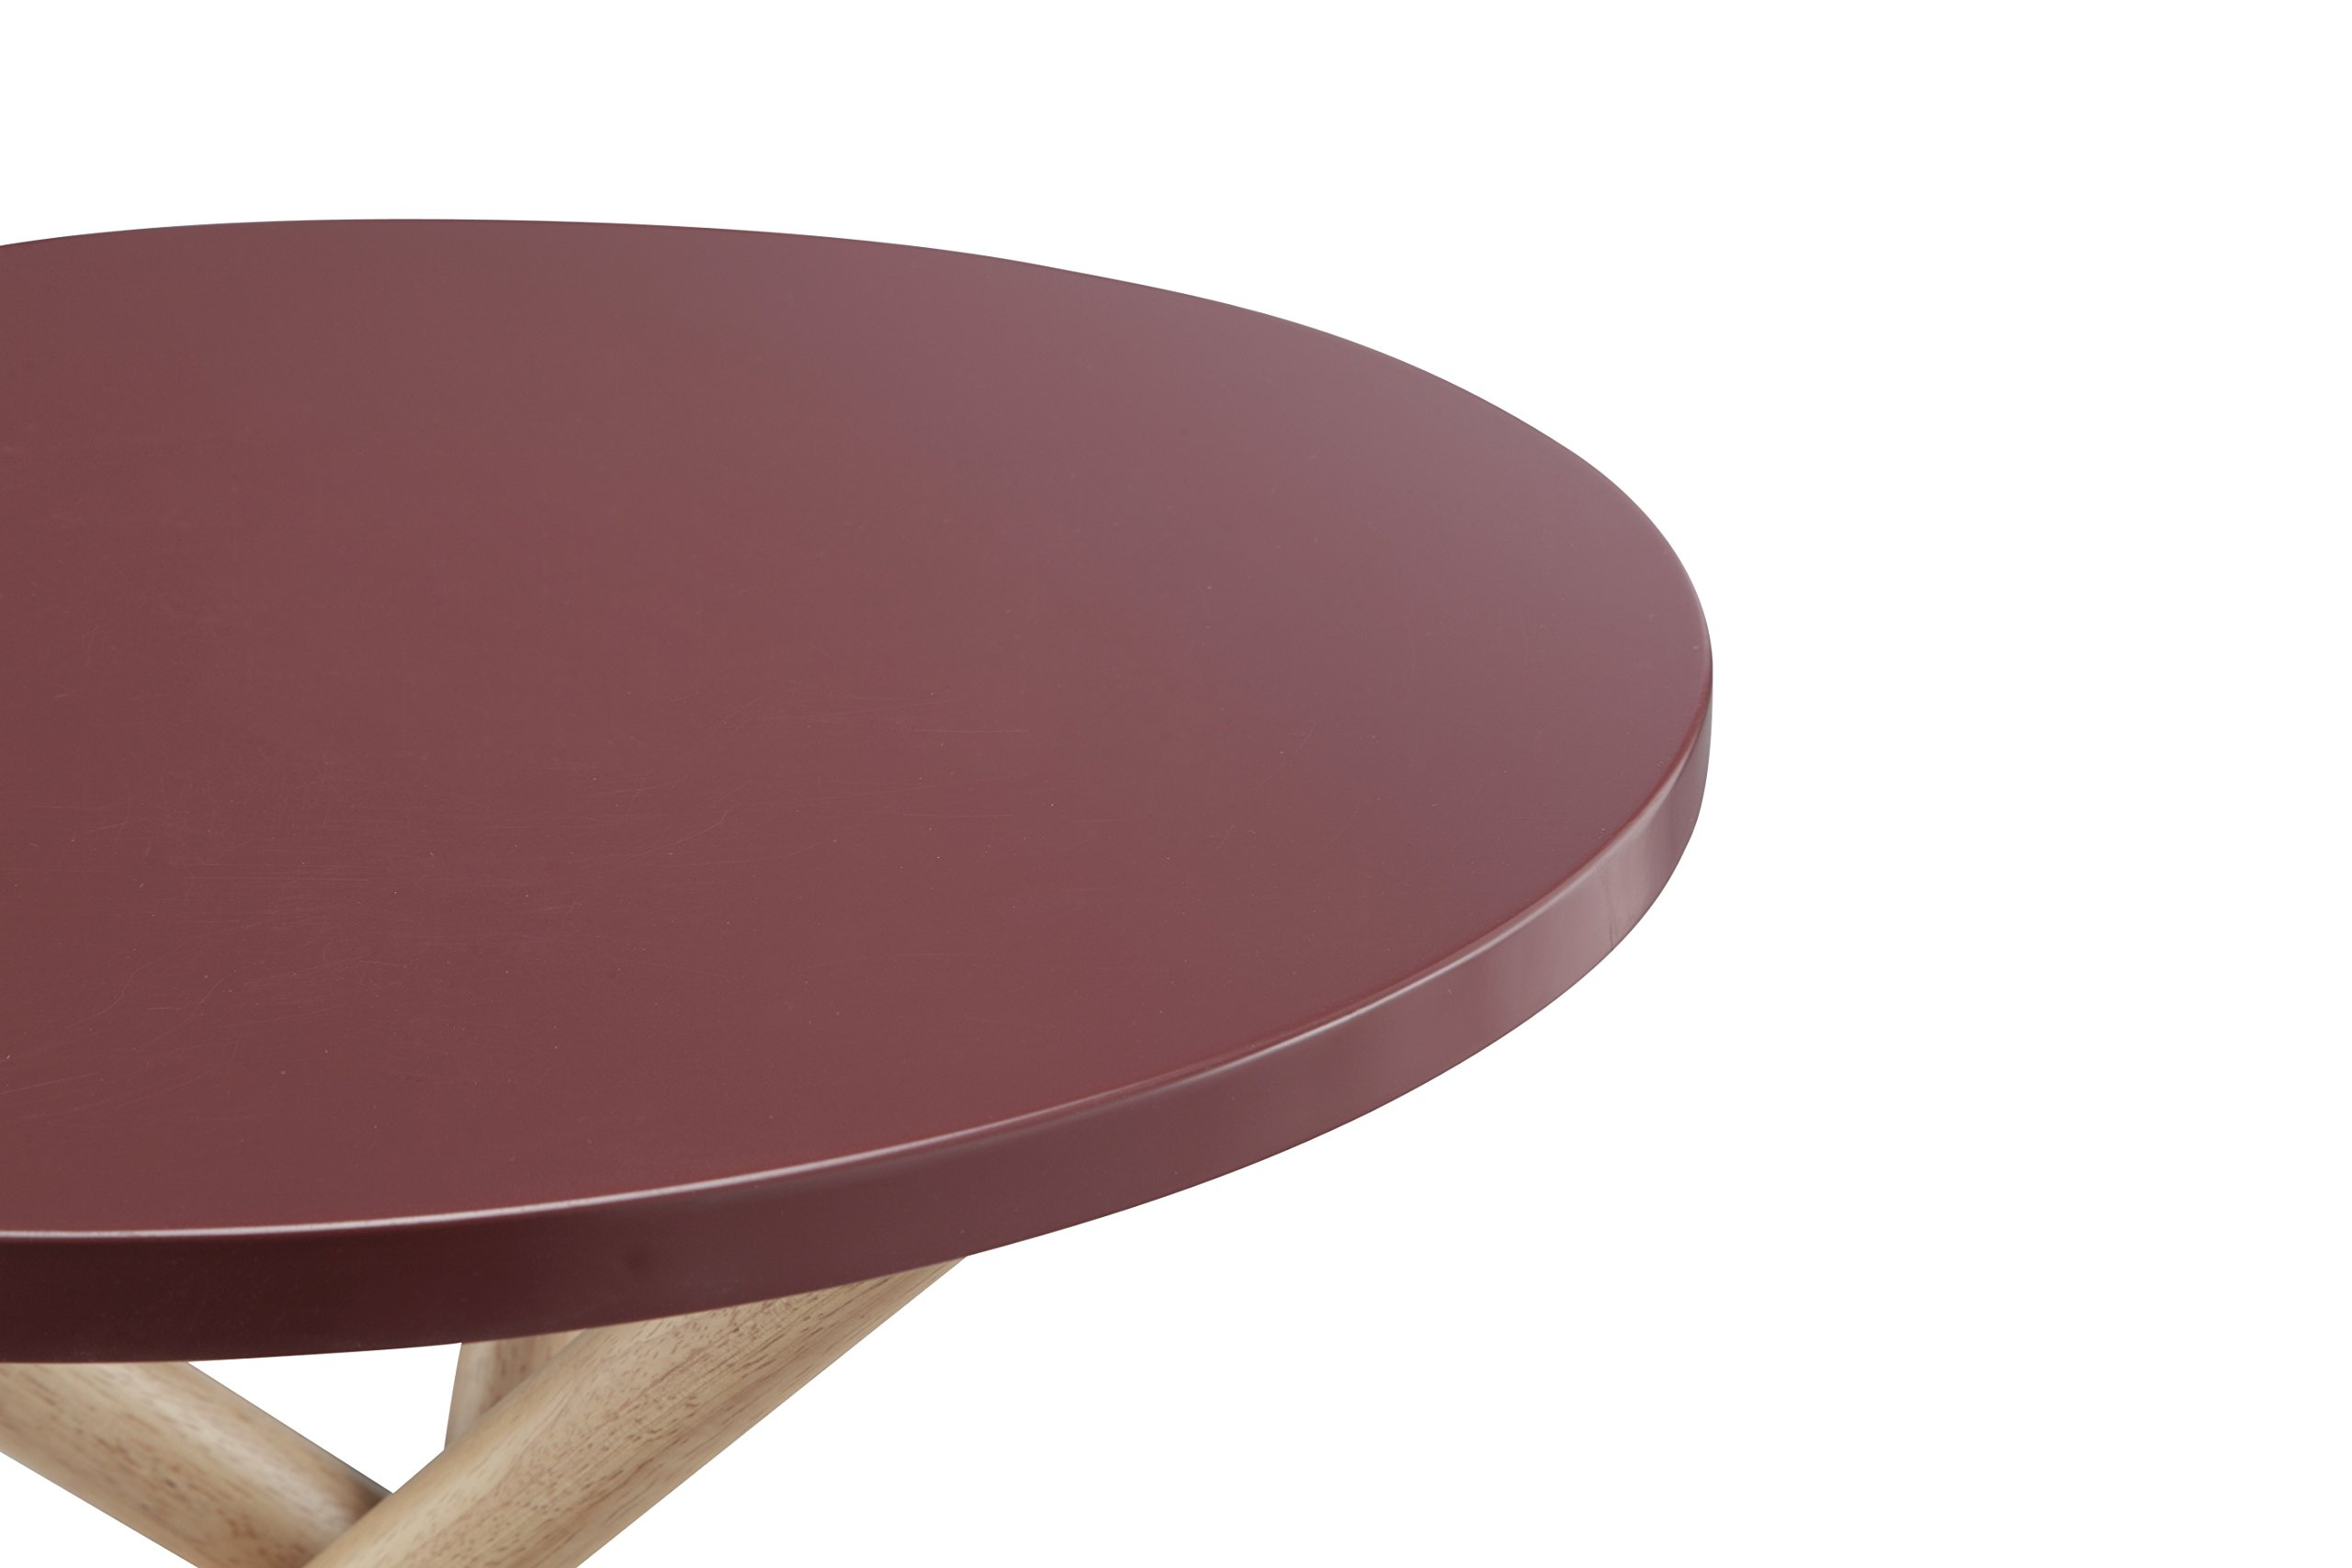 ACME Lanica Burgundy and Natural End Table - Round tripod table Wooden round Top Wooden tripod base - living-room-furniture, living-room, end-tables - 71lqJgdKYrL -